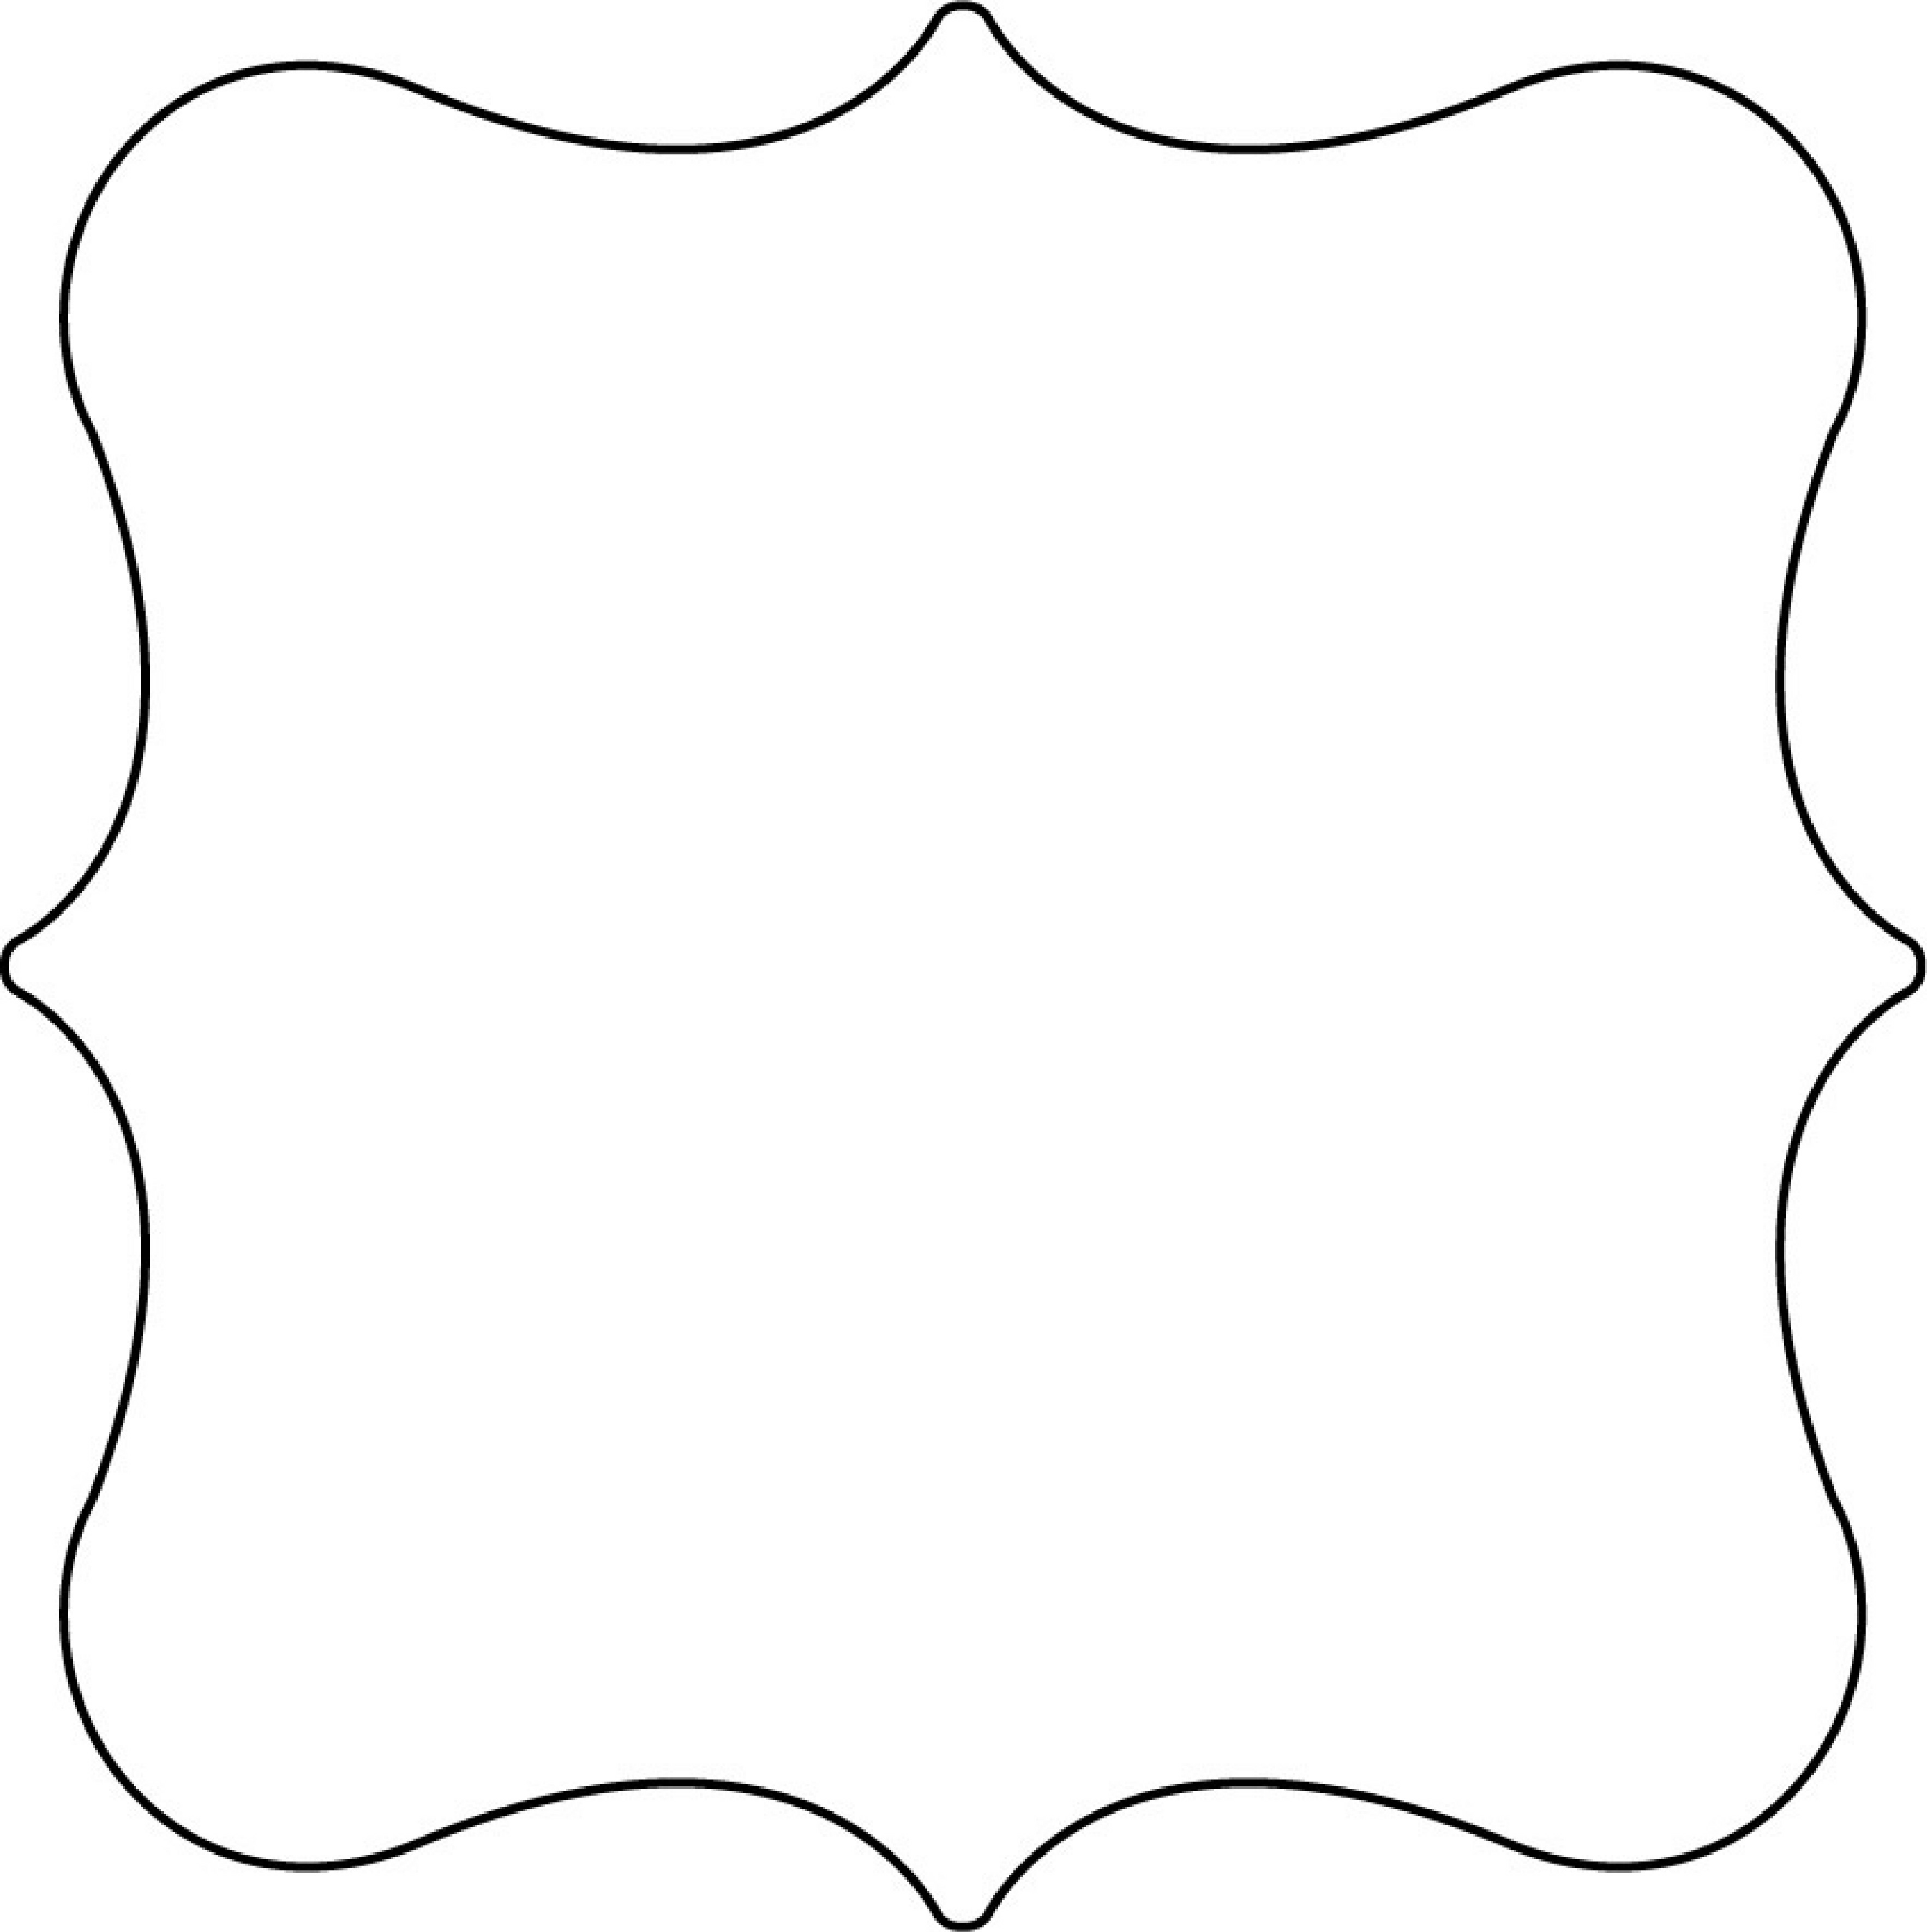 templates for shapes - Dorit.mercatodos.co